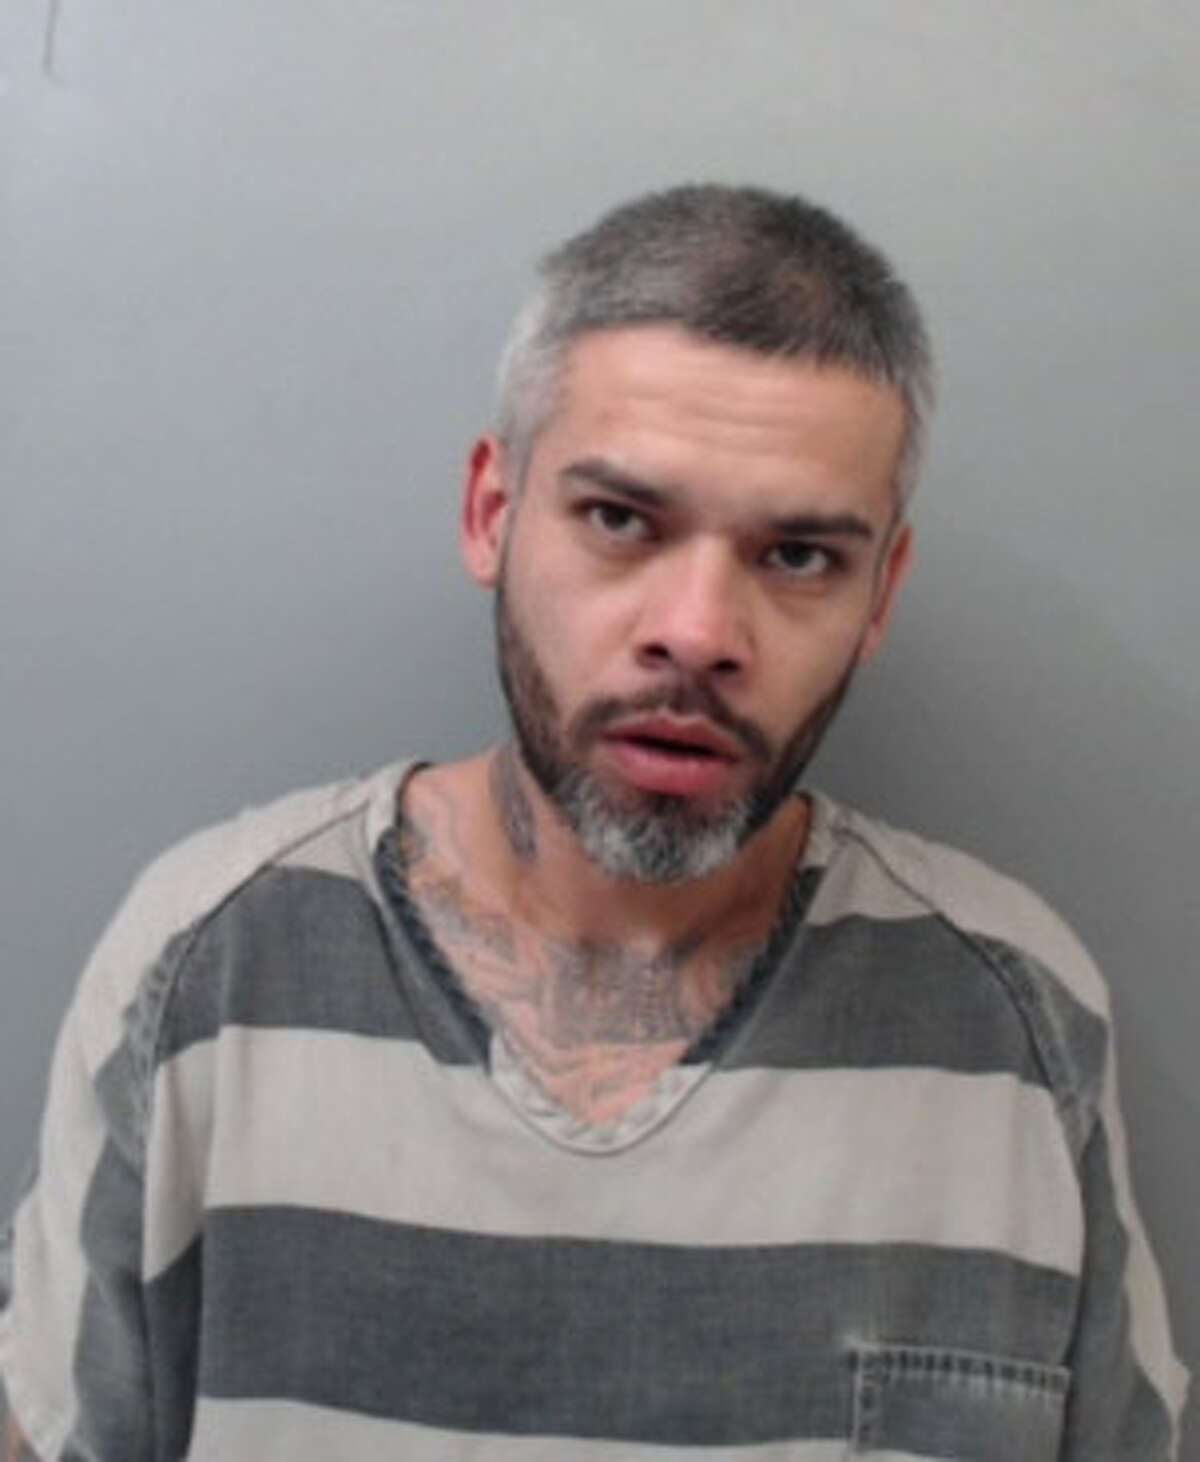 Ricardo Campos, 34, was charged with unauthorized use of a vehicle.